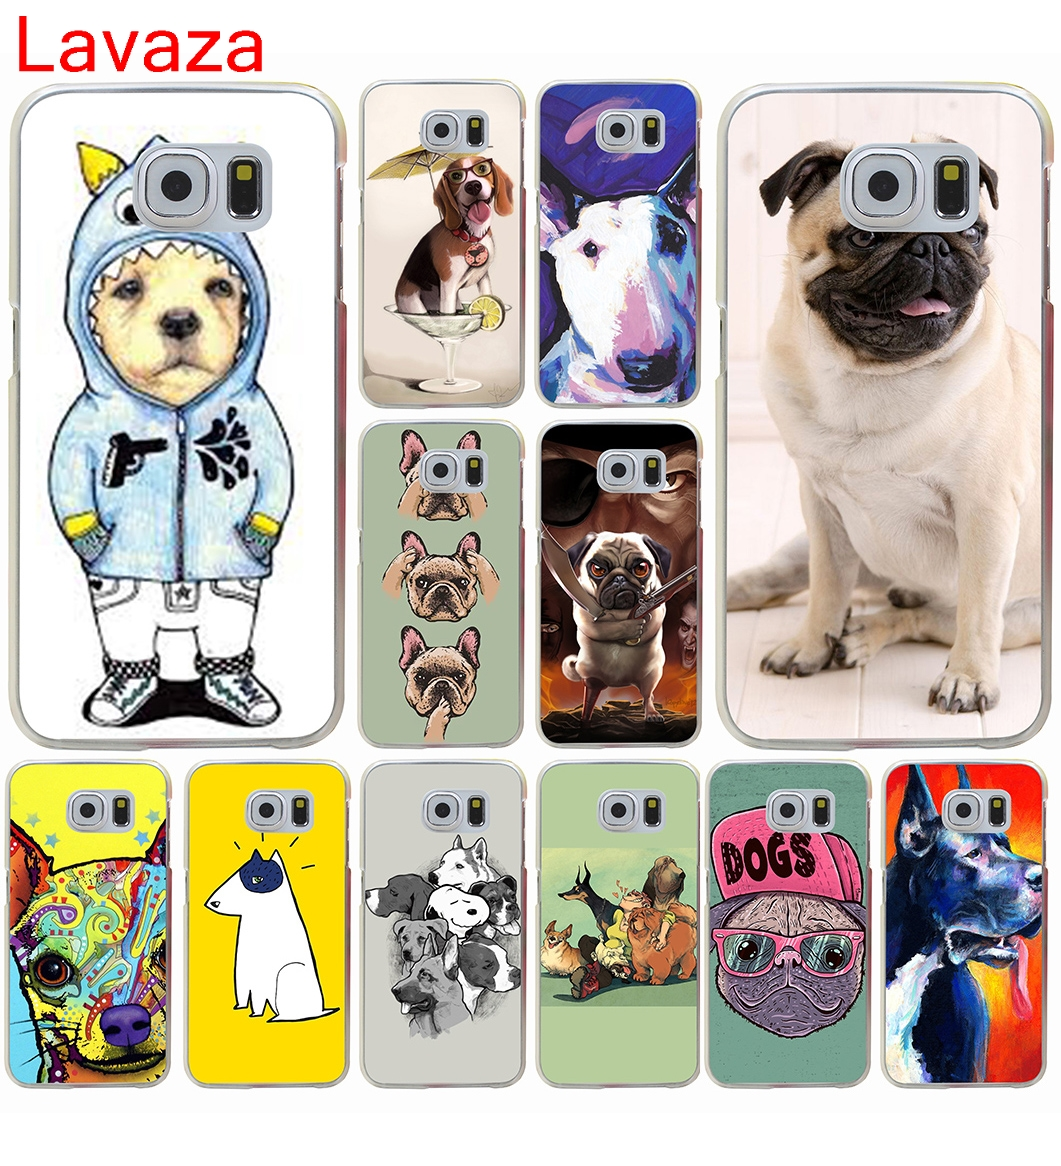 Lavaza Tattooed Bullterrier Cute dog Biaoqing Hard Transparent for Galaxy S4 S5 & Mini S6 S7 S8 edge S6 Edge Plus